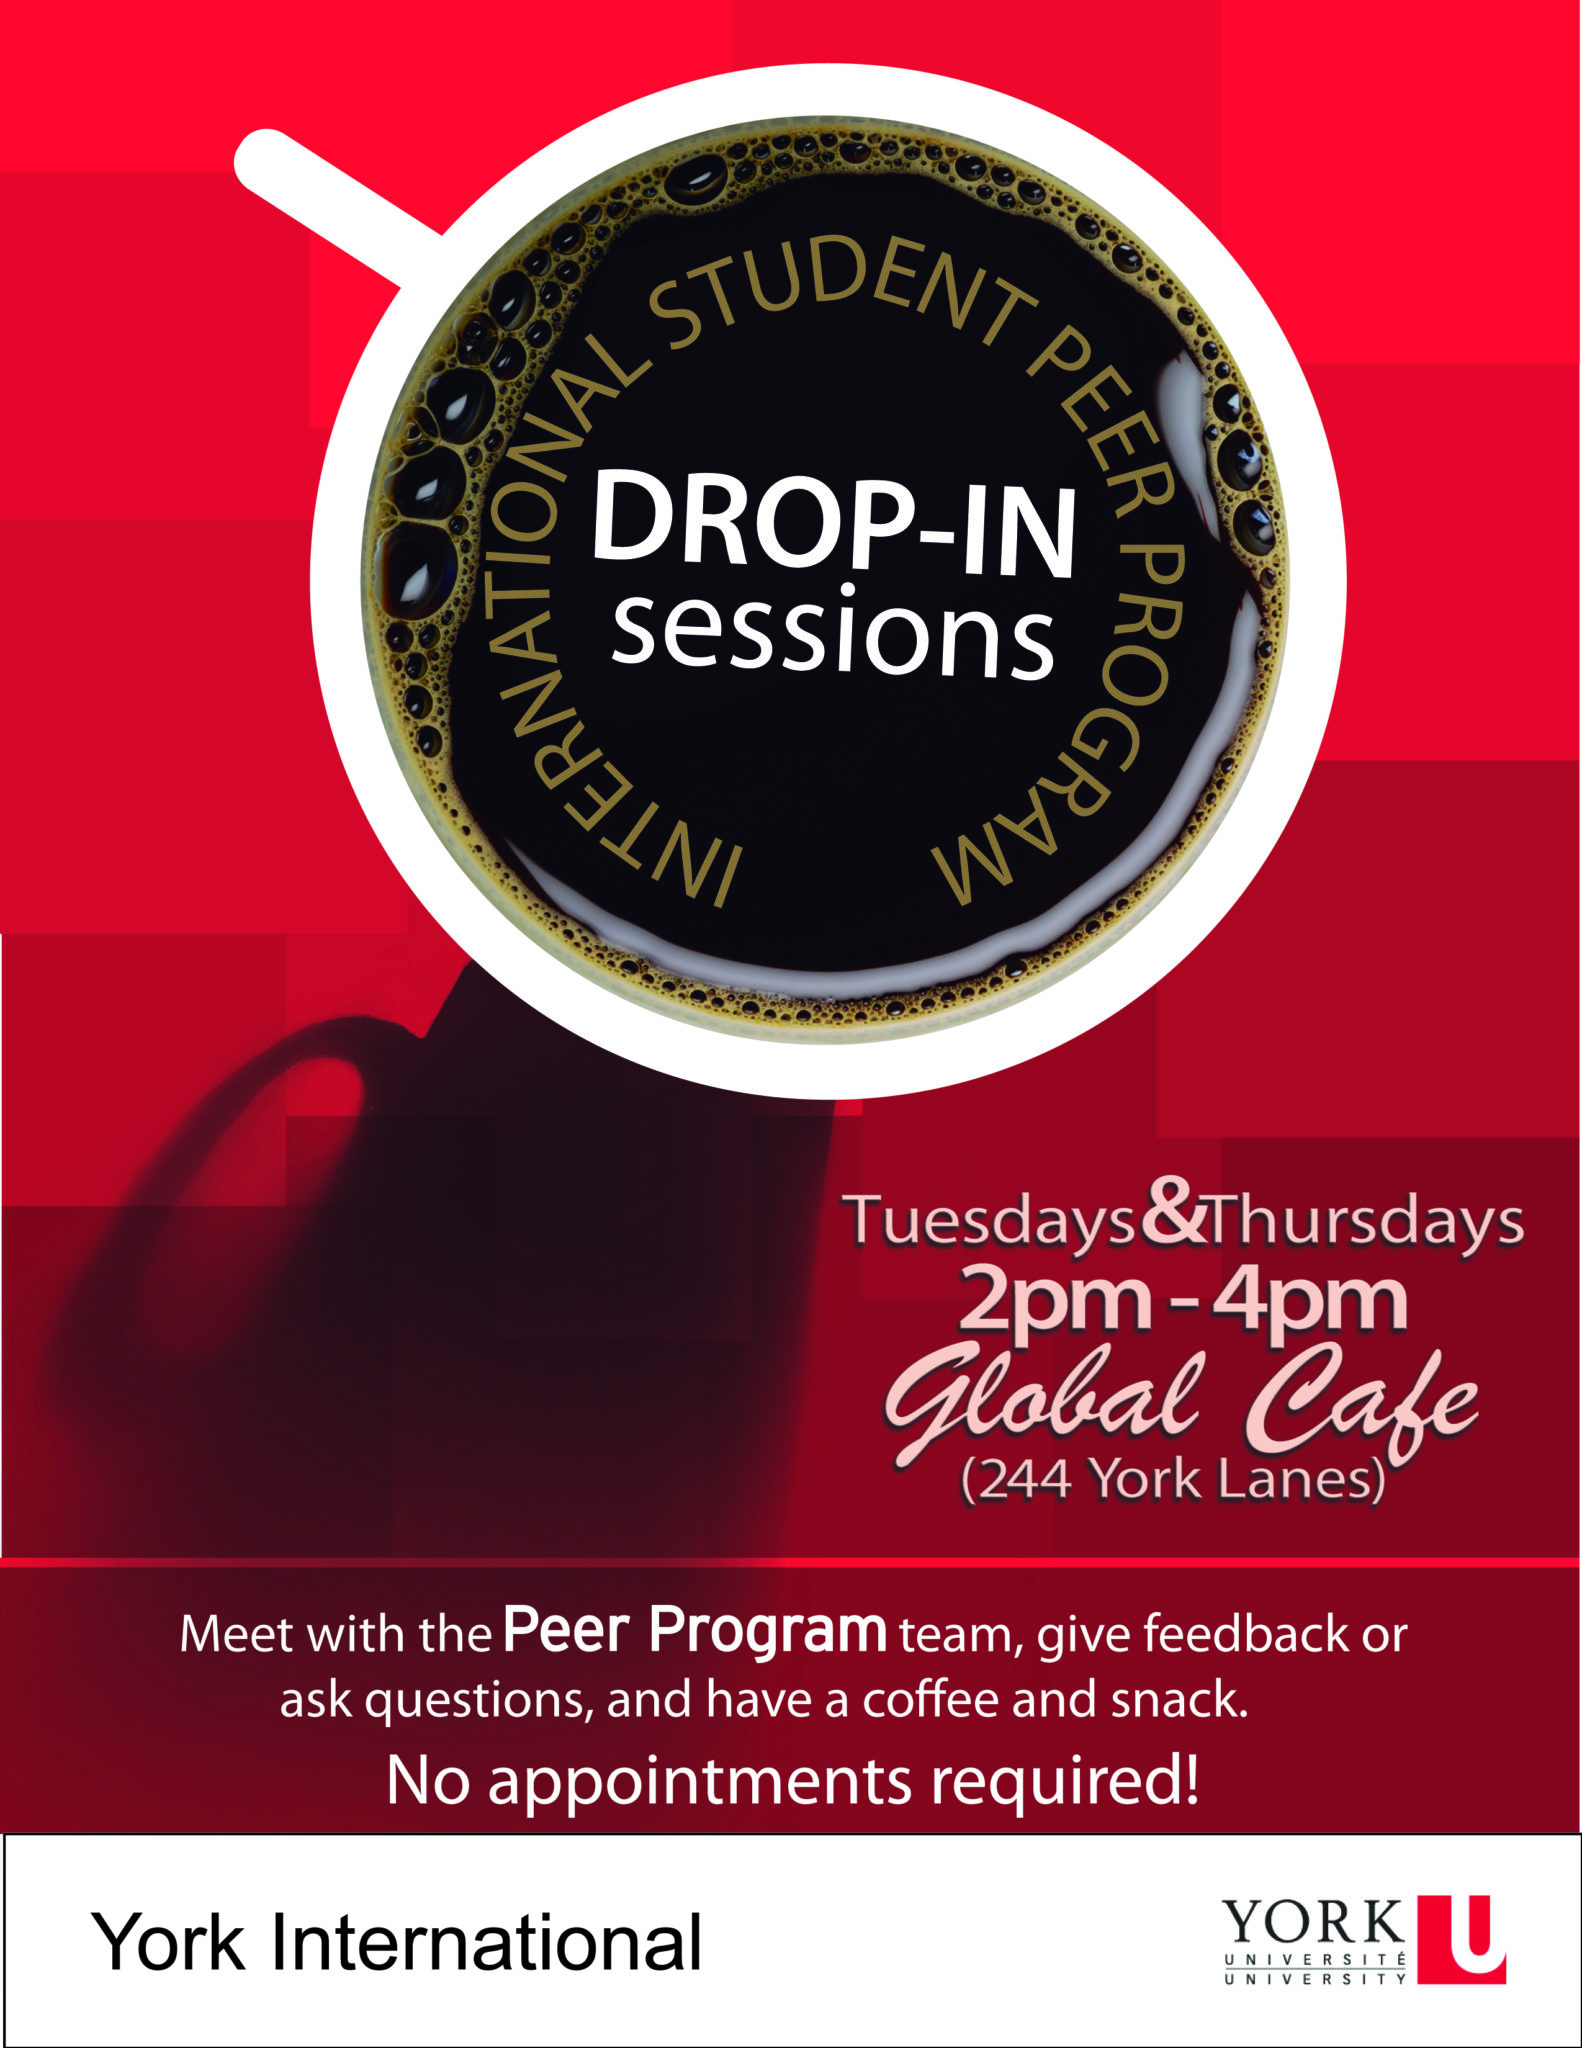 Peer Program Drop-in Session at the Global Cafe @ Global Cafe (244 York Lanes)